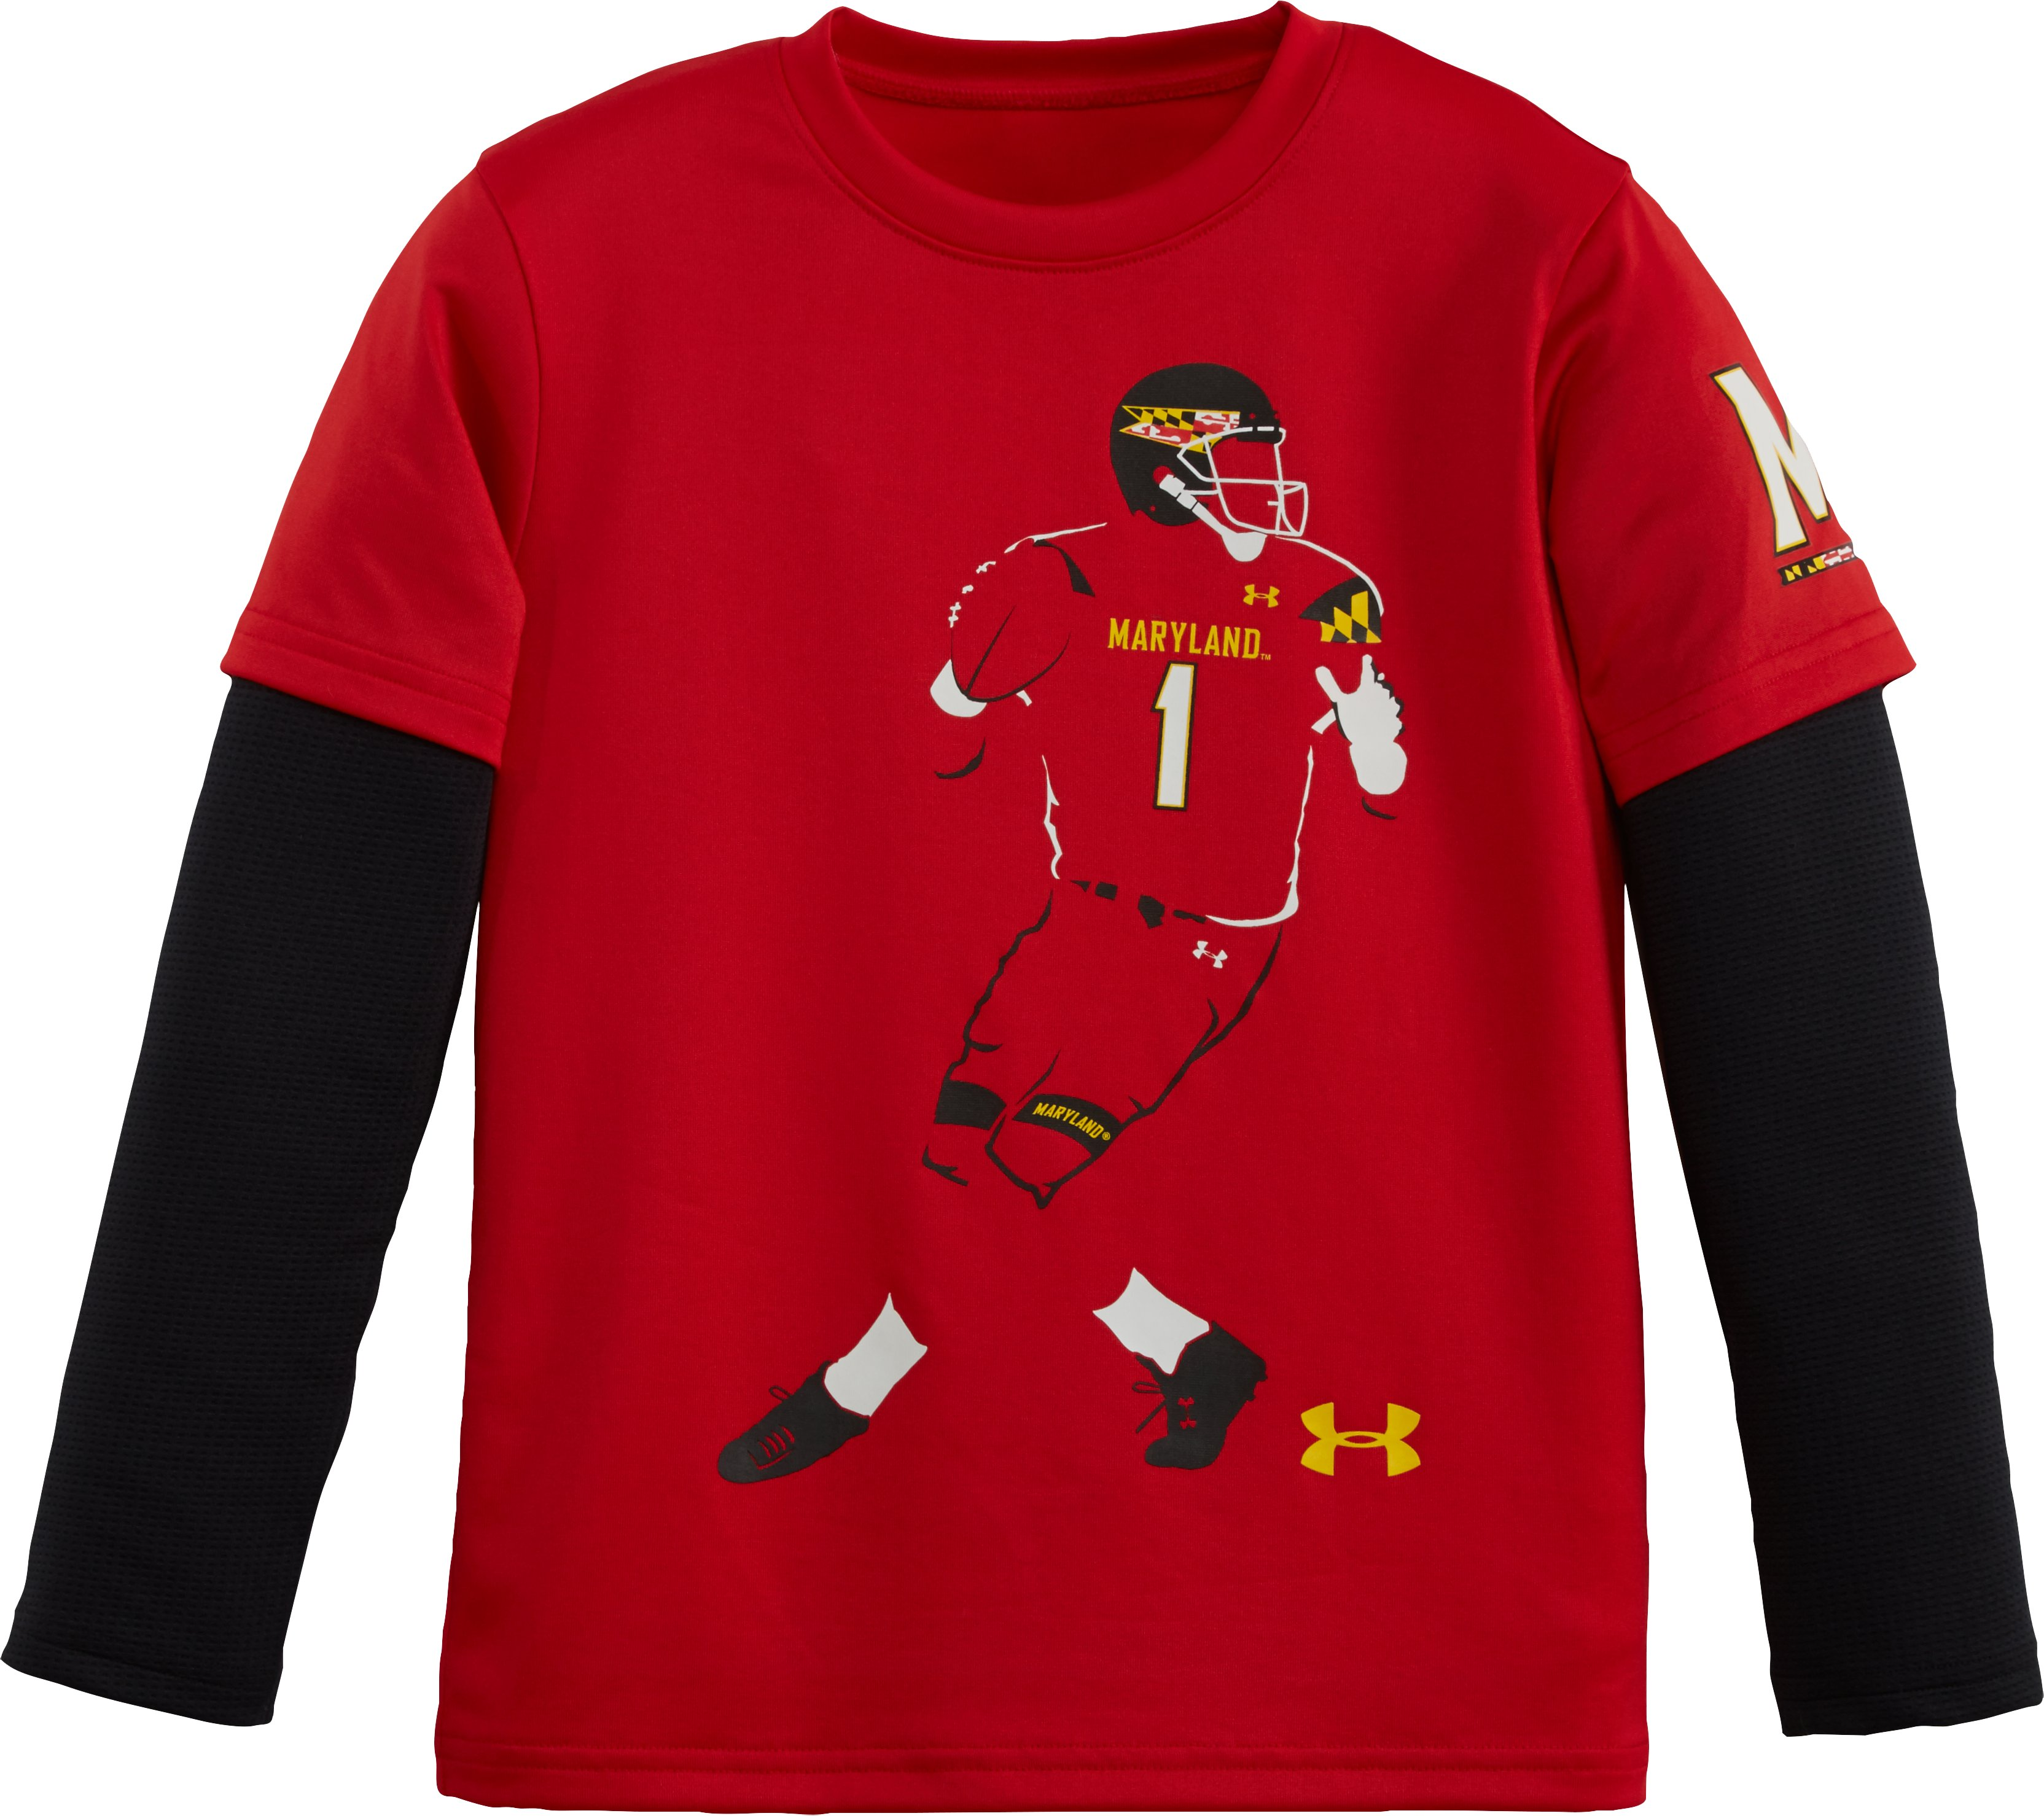 Boys' Pre-School Maryland Football Player Slider, Red, zoomed image